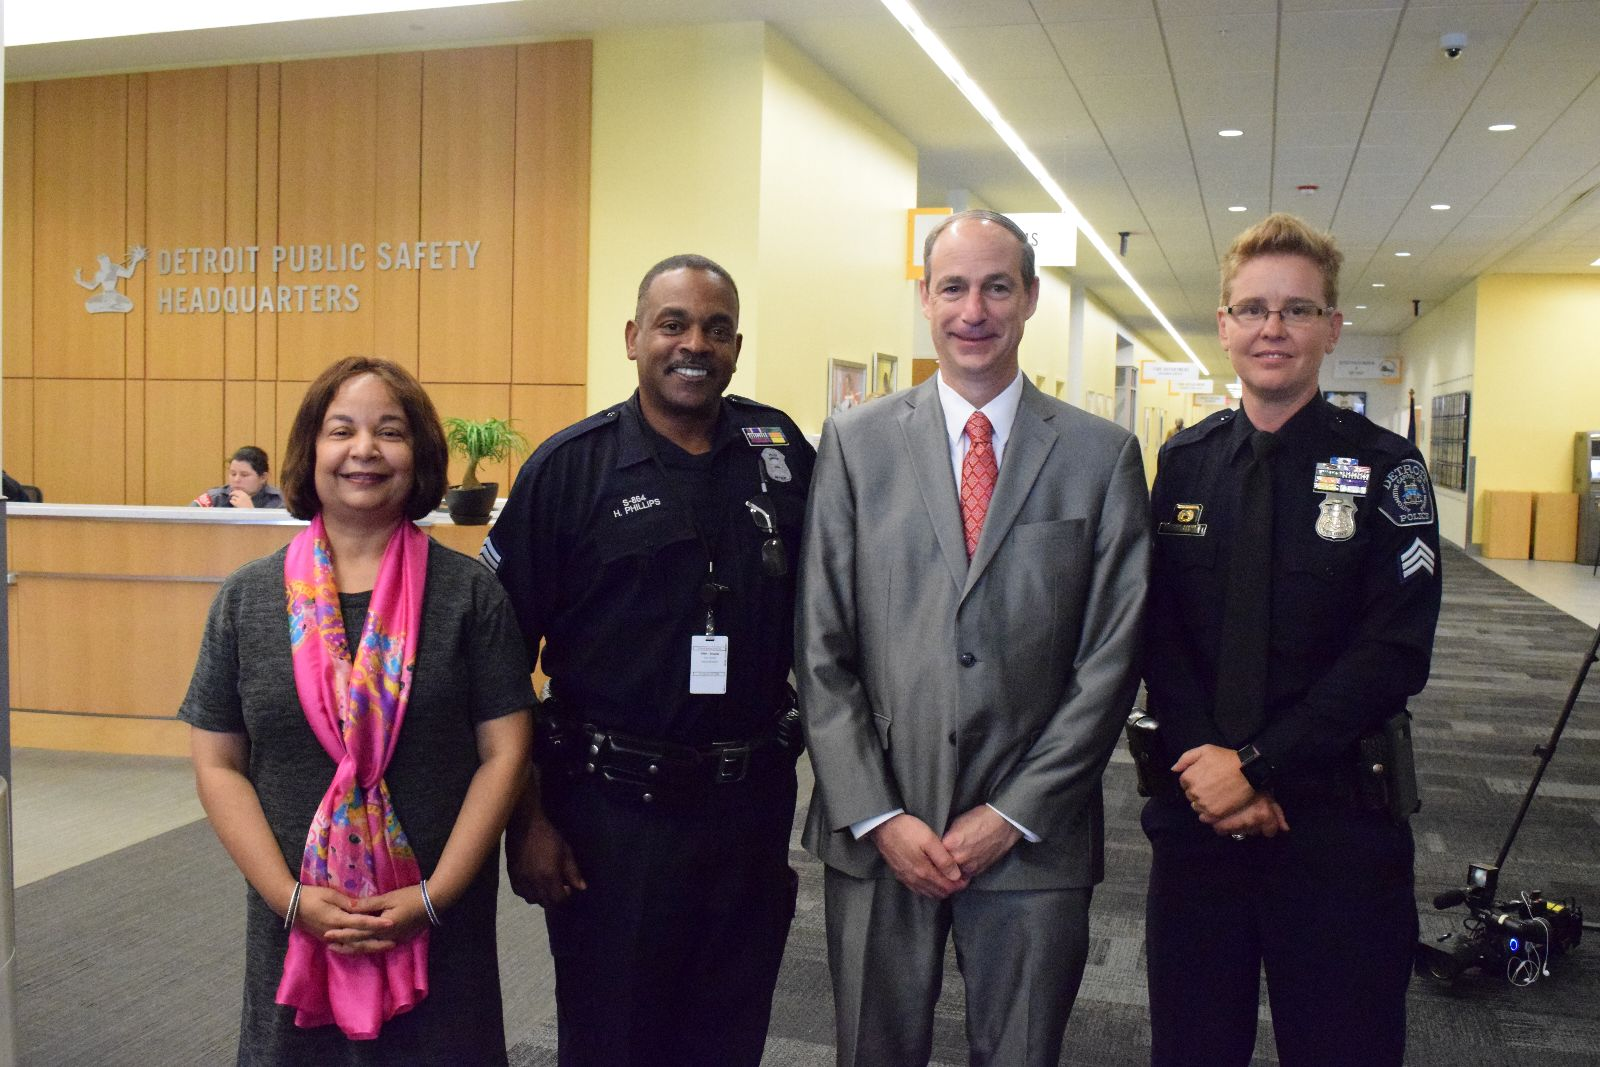 news college of liberal arts and sciences from left to right associate provost and dean of wayne state s graduate school ambika mathur dpd sergeant howard phillips college of liberal arts and